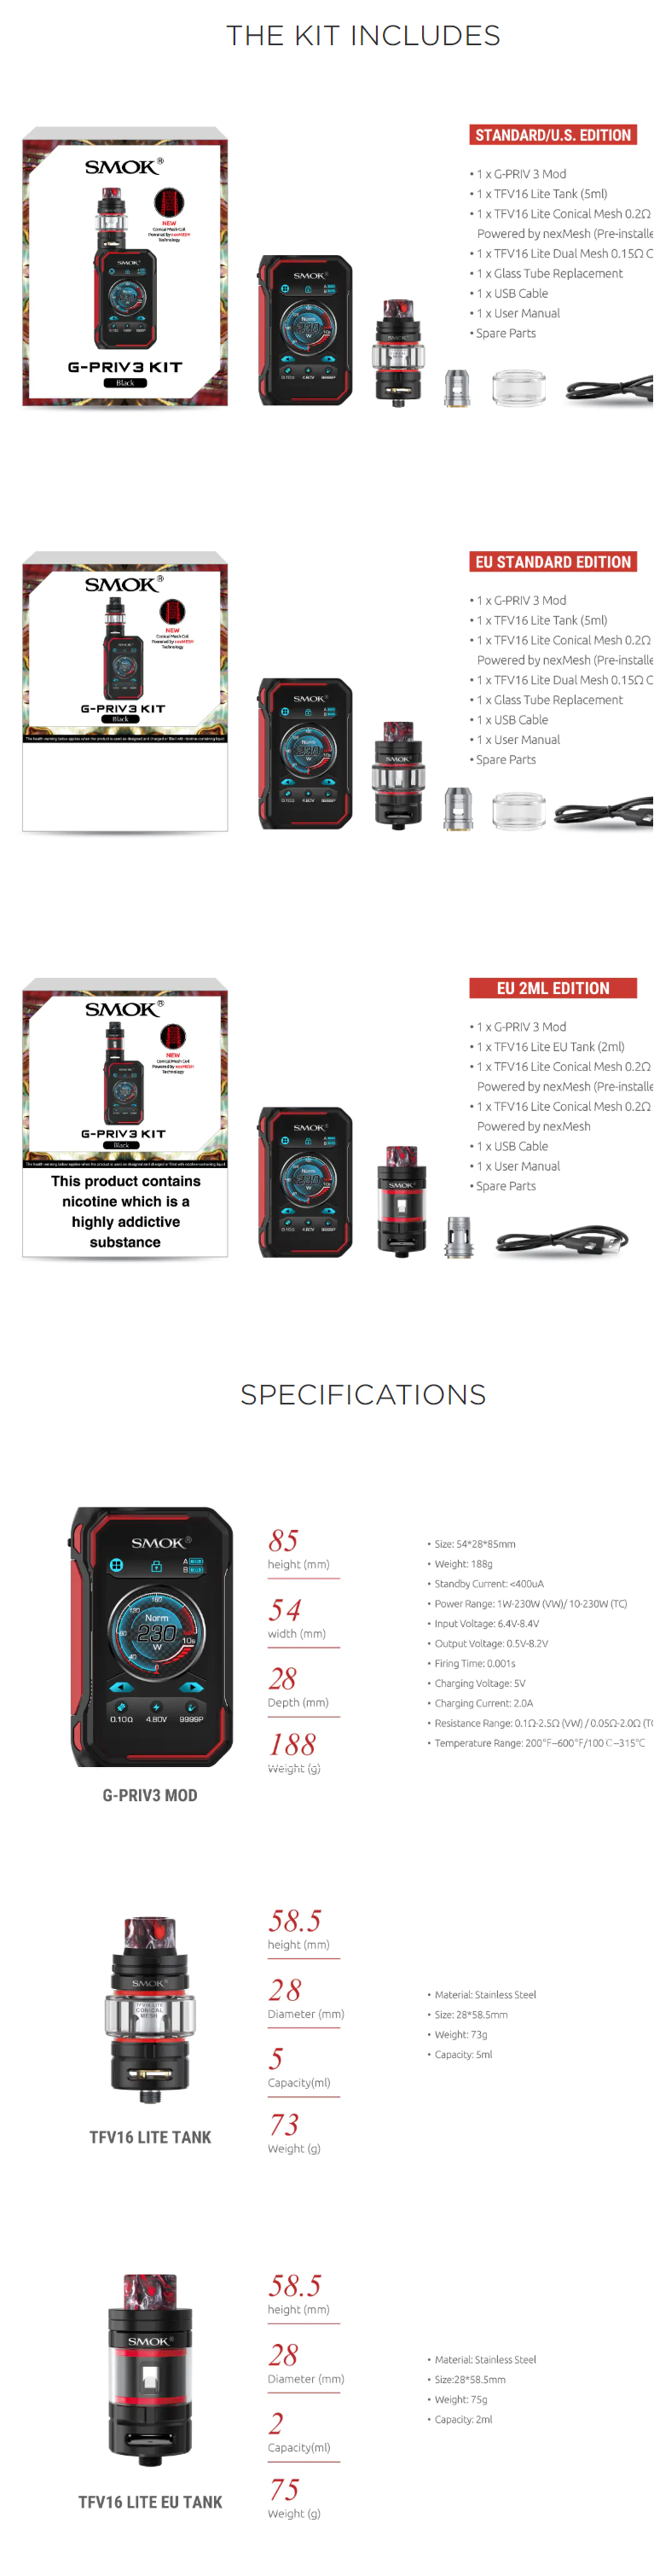 Smok G-Priv 3 Kit box contents and specifications